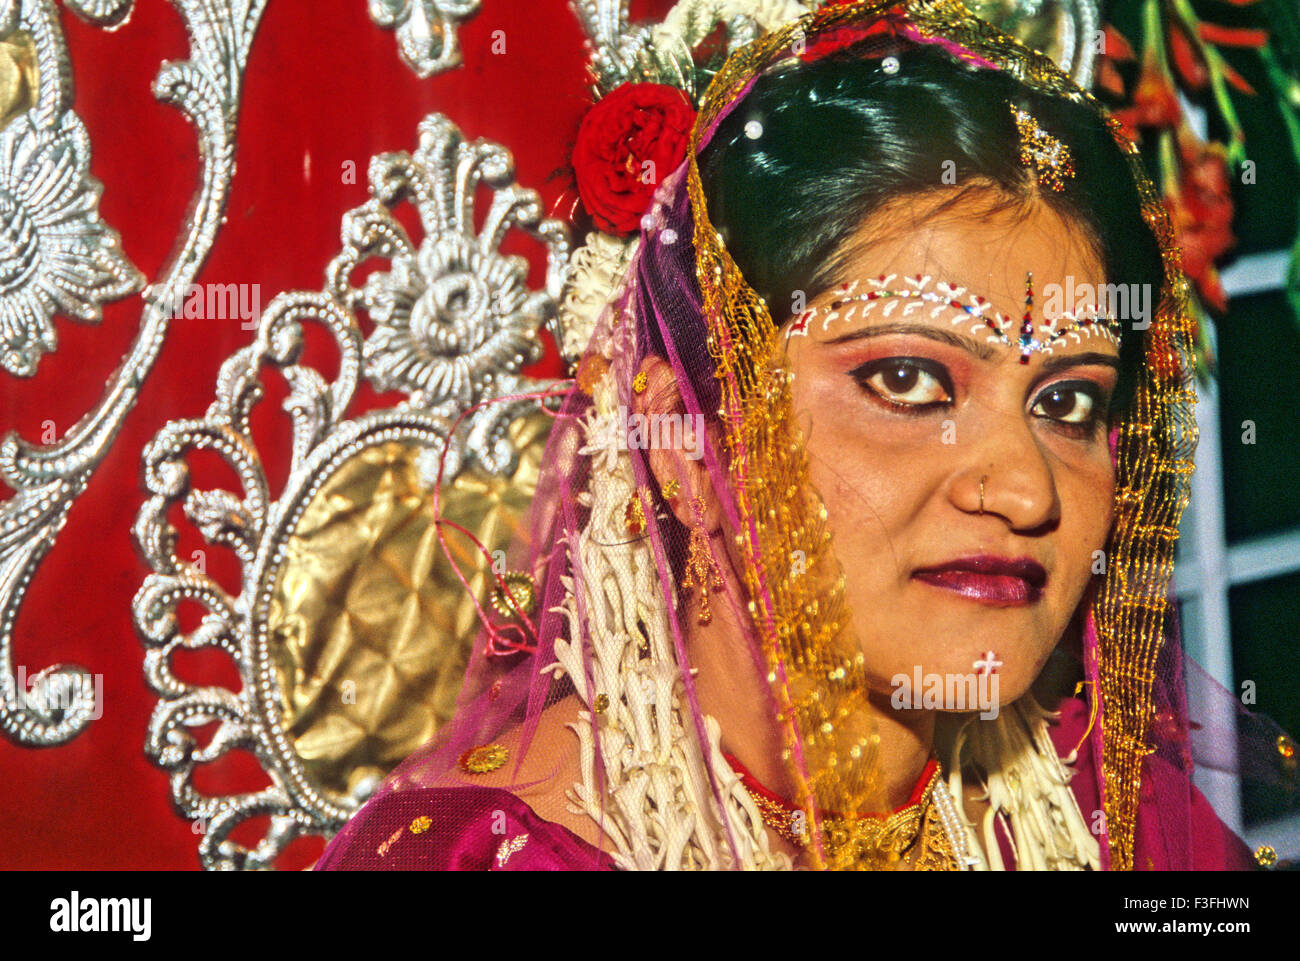 Bride looking at camera ; a Bengali marriage ceremony ; India Stock Photo